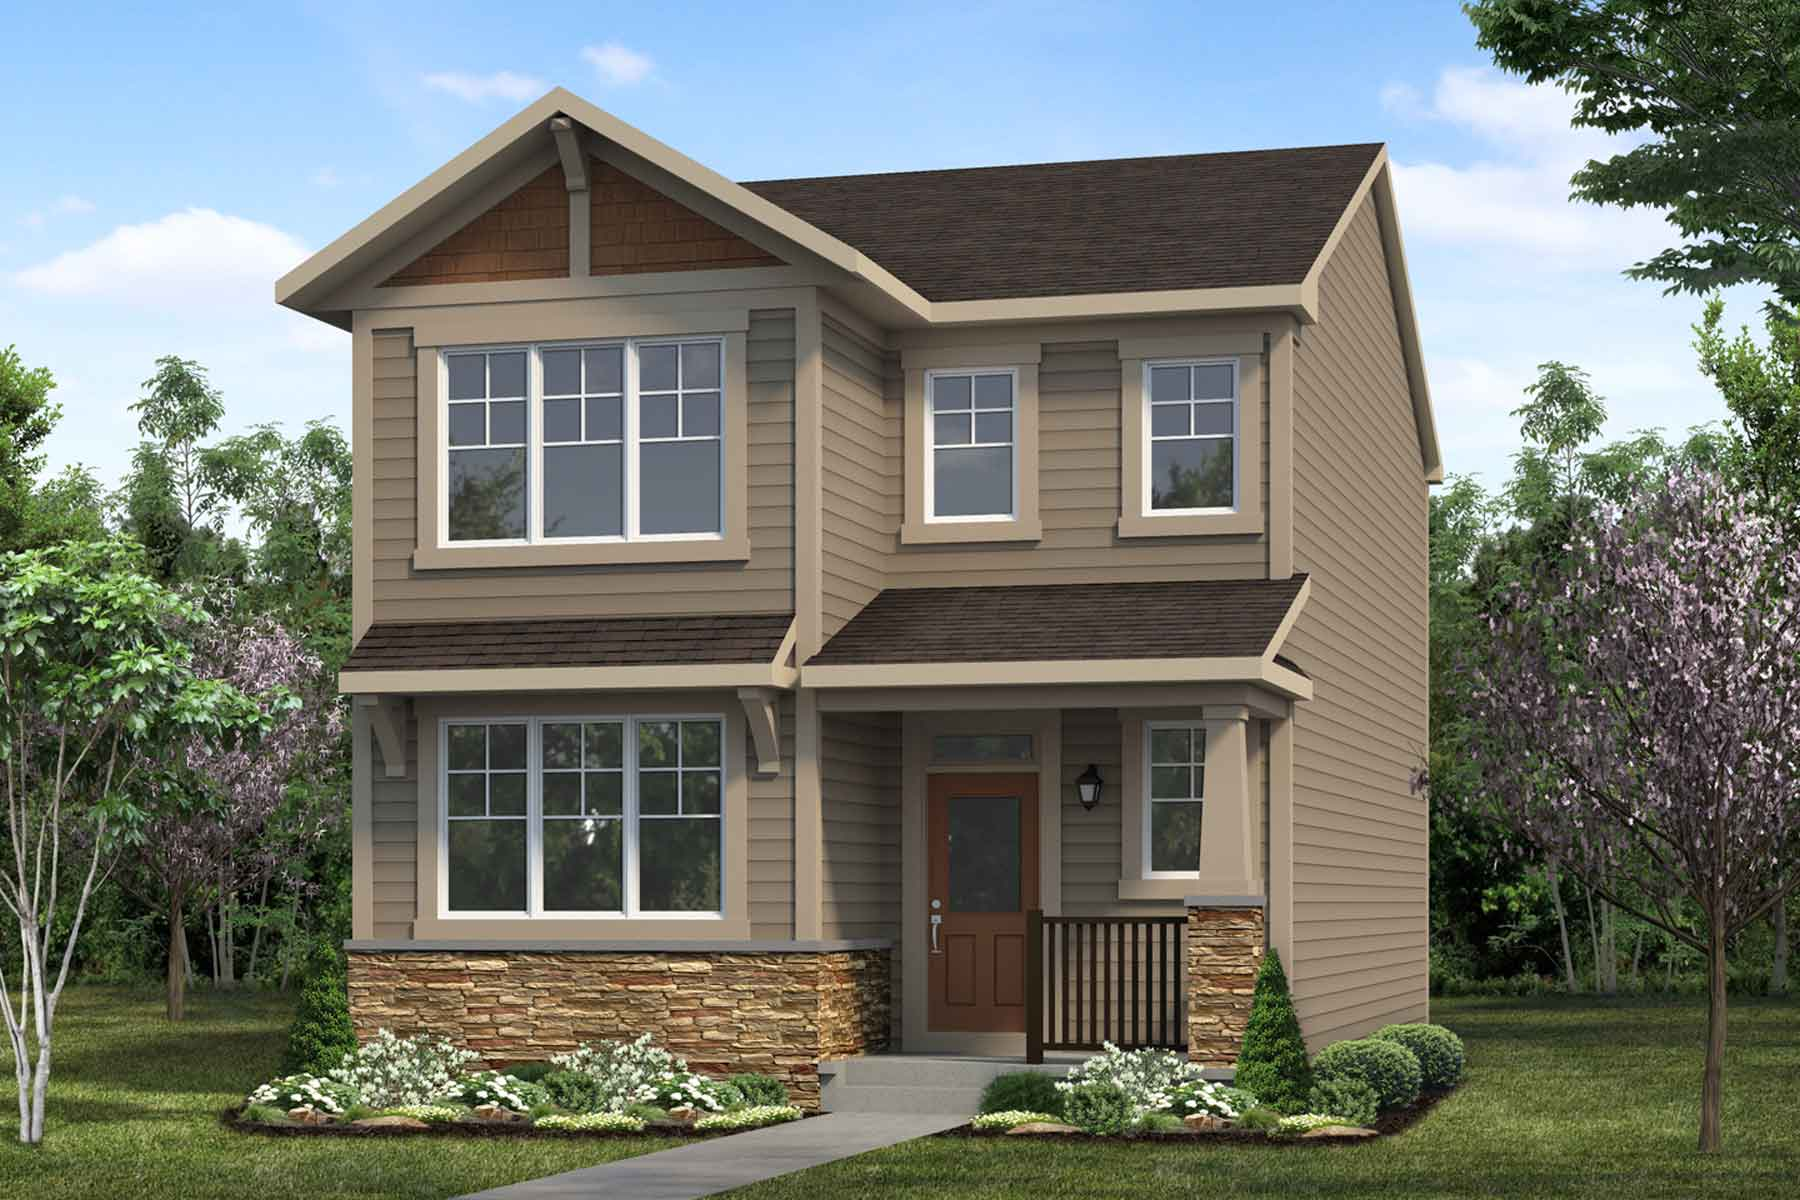 Thames Plan Elevation Front at Cityscape in Calgary Alberta by Mattamy Homes